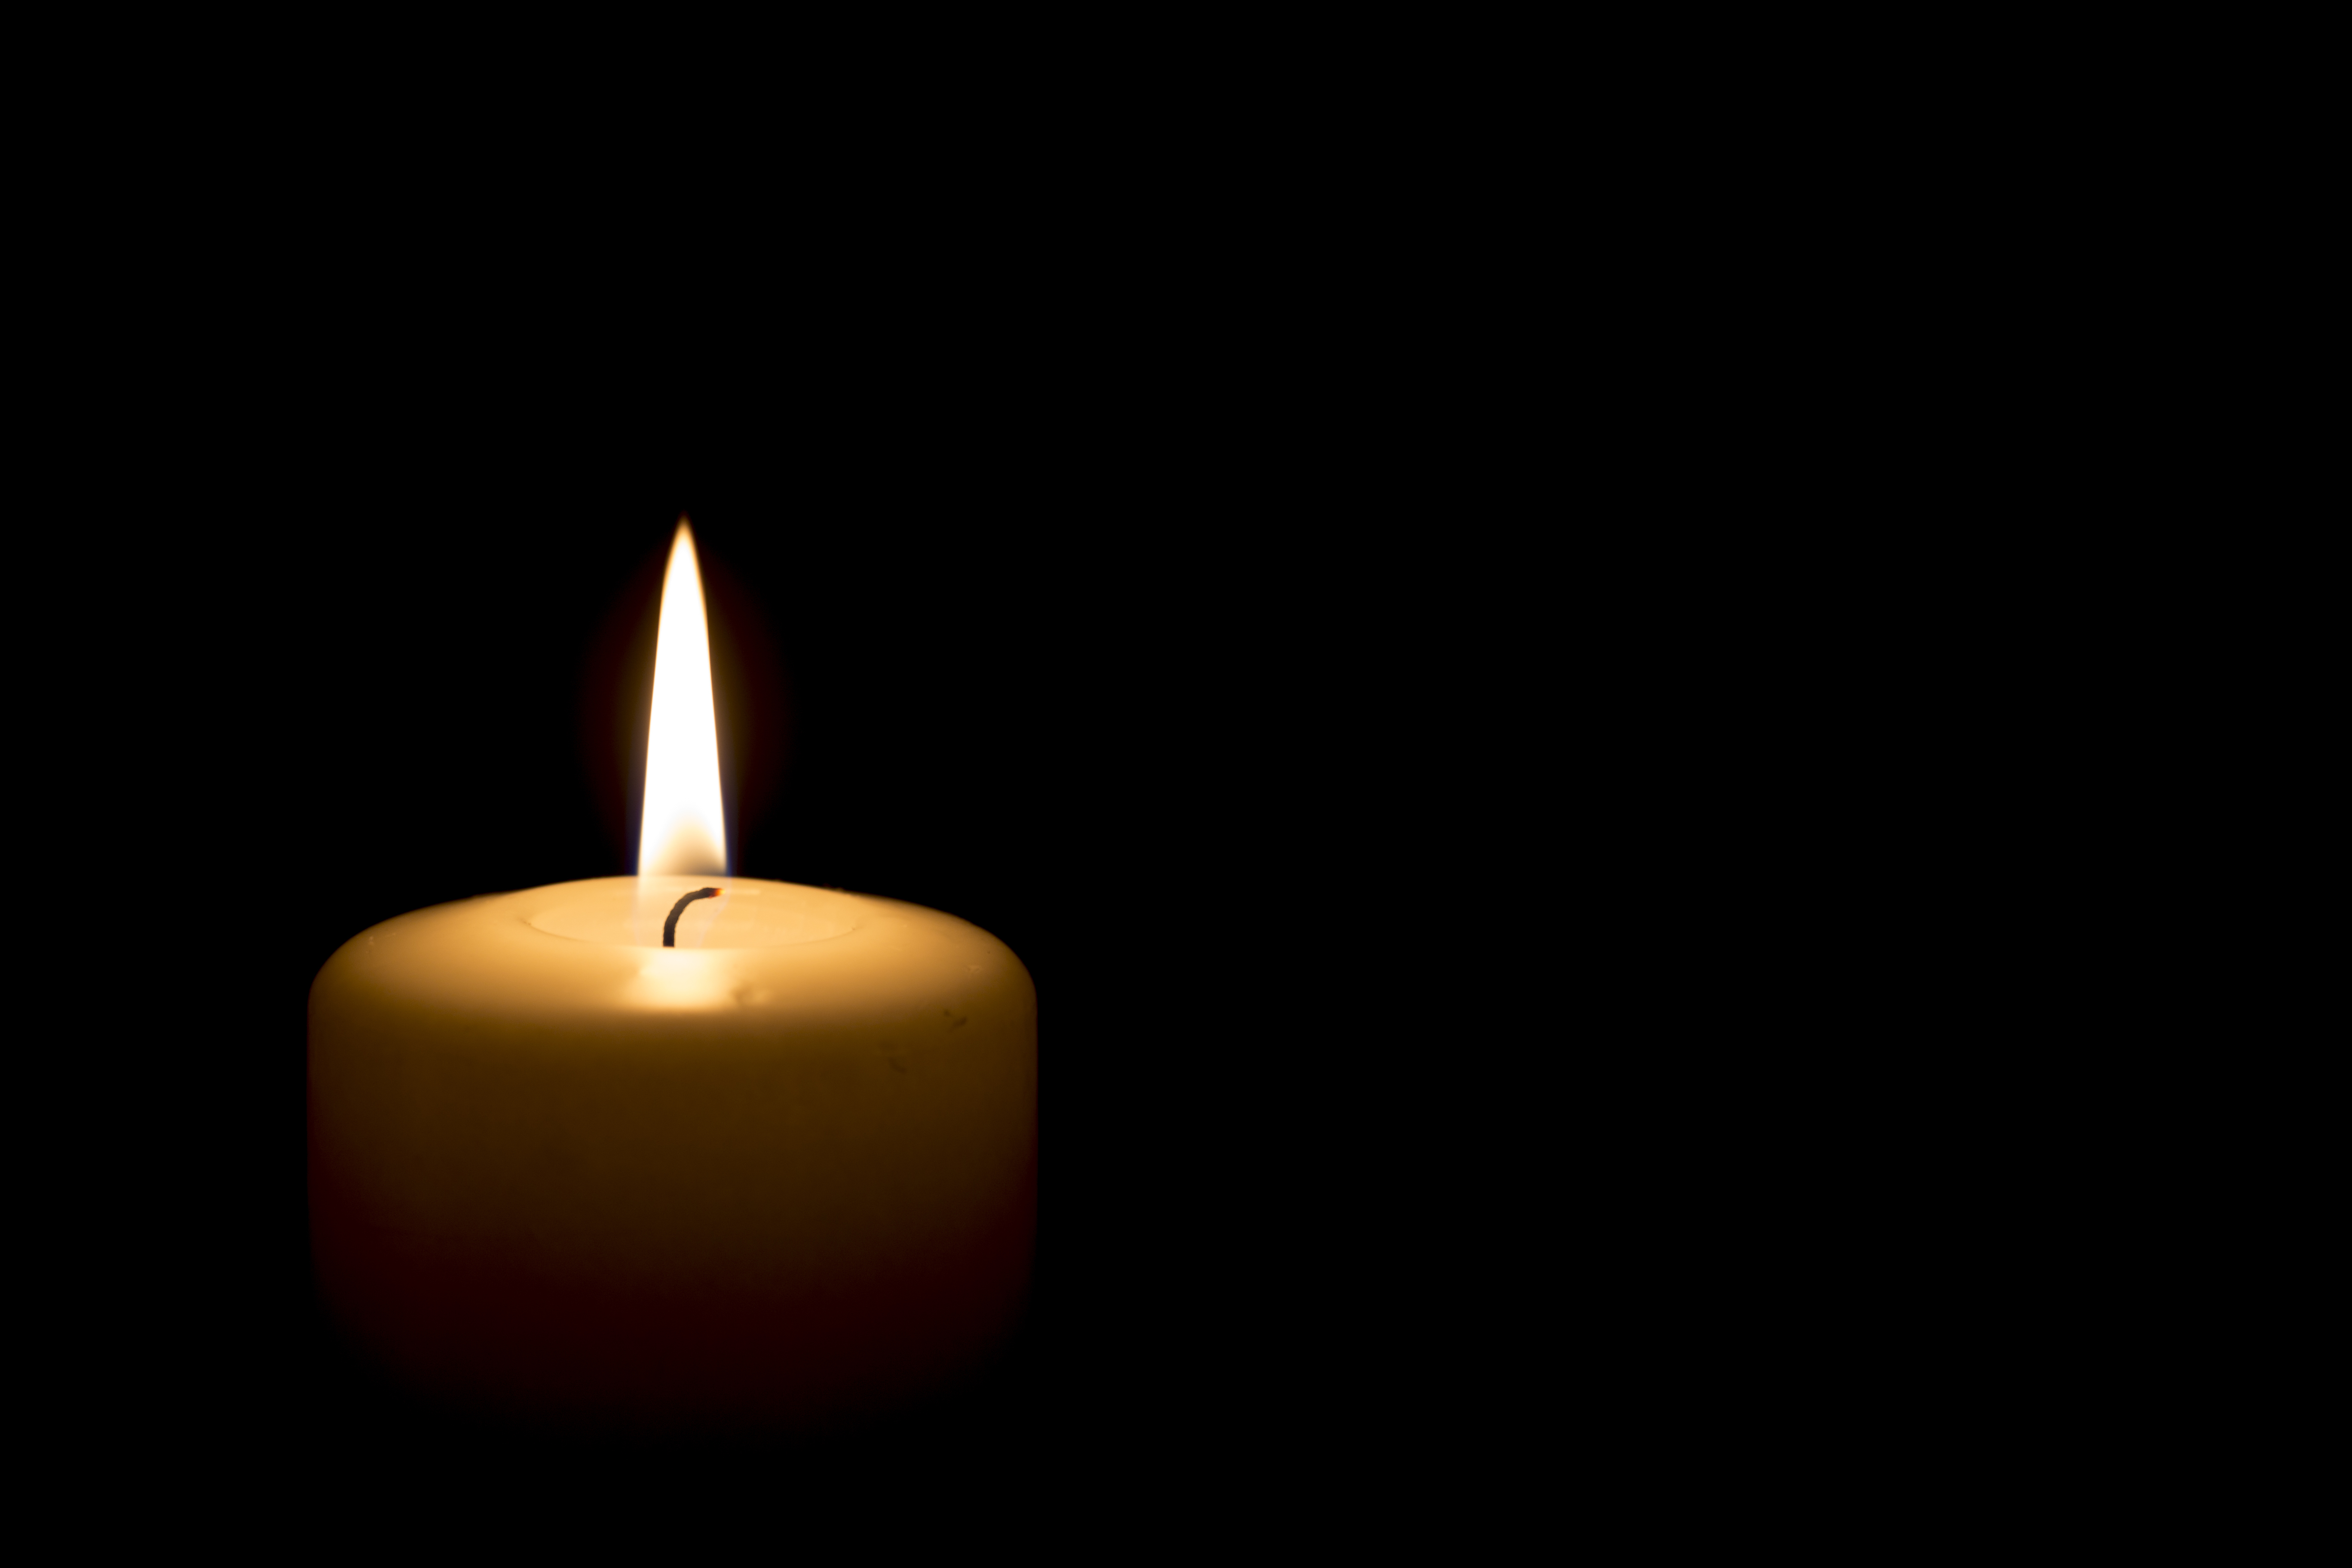 Shining a light on the loneliness of grief